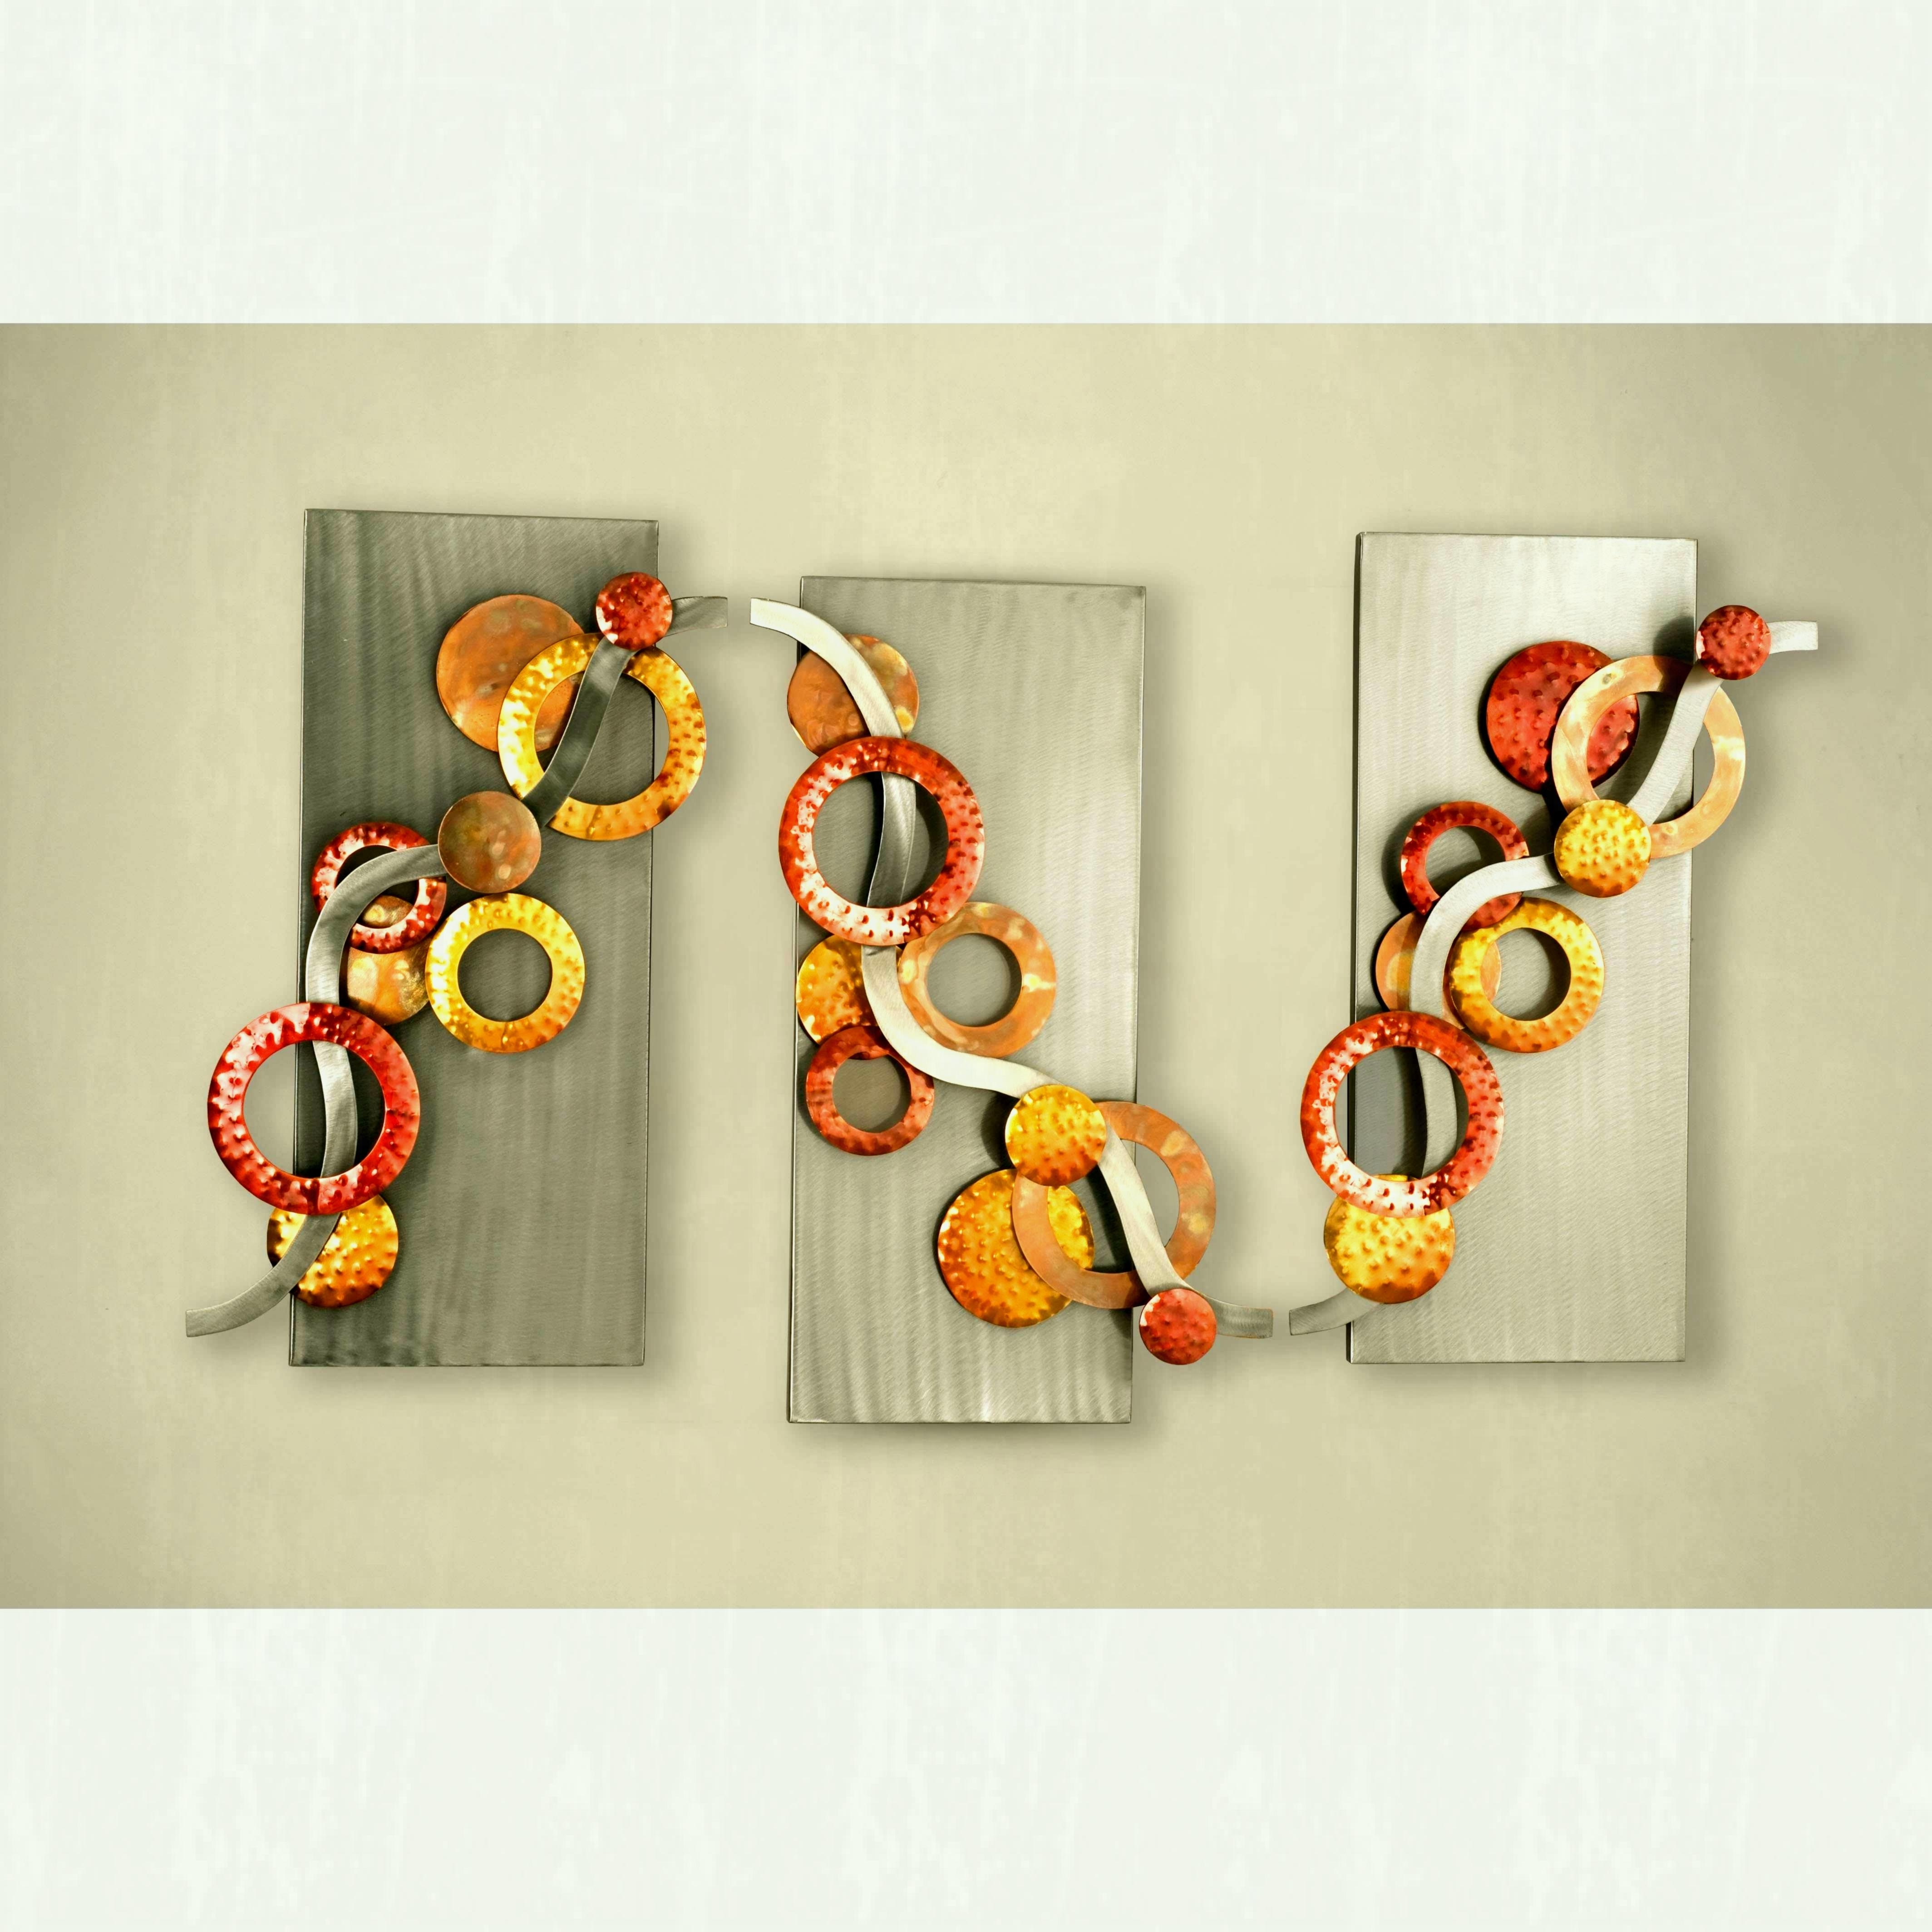 Widely Used Canvas Wall Art Sets Fresh Ideas Design Circle Adorable Set Of Throughout Wall Art Sets (View 15 of 15)